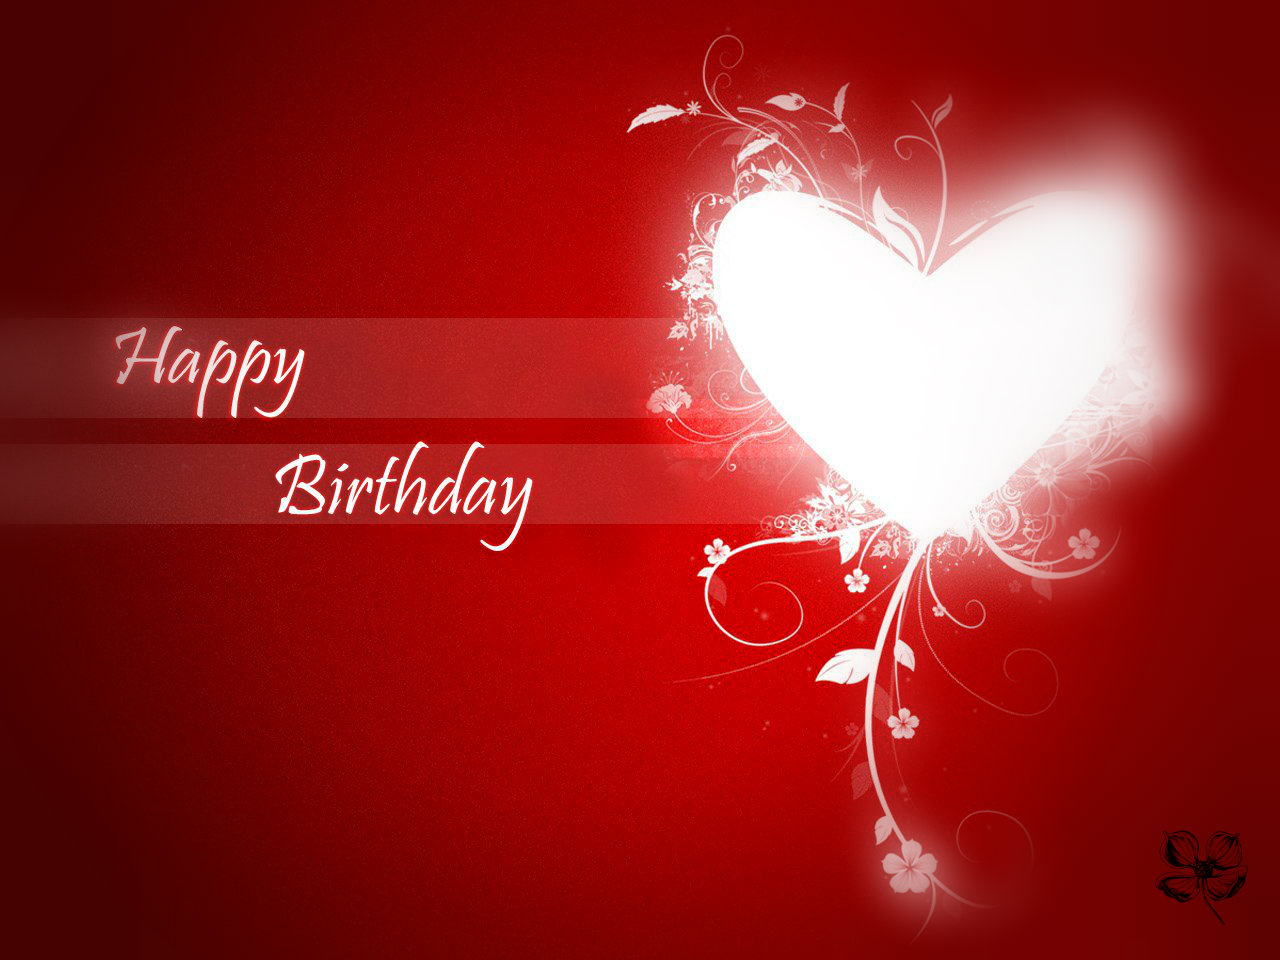 Birthday Wallpapers Happy Birthday Birthday Quotes Download 1280x960